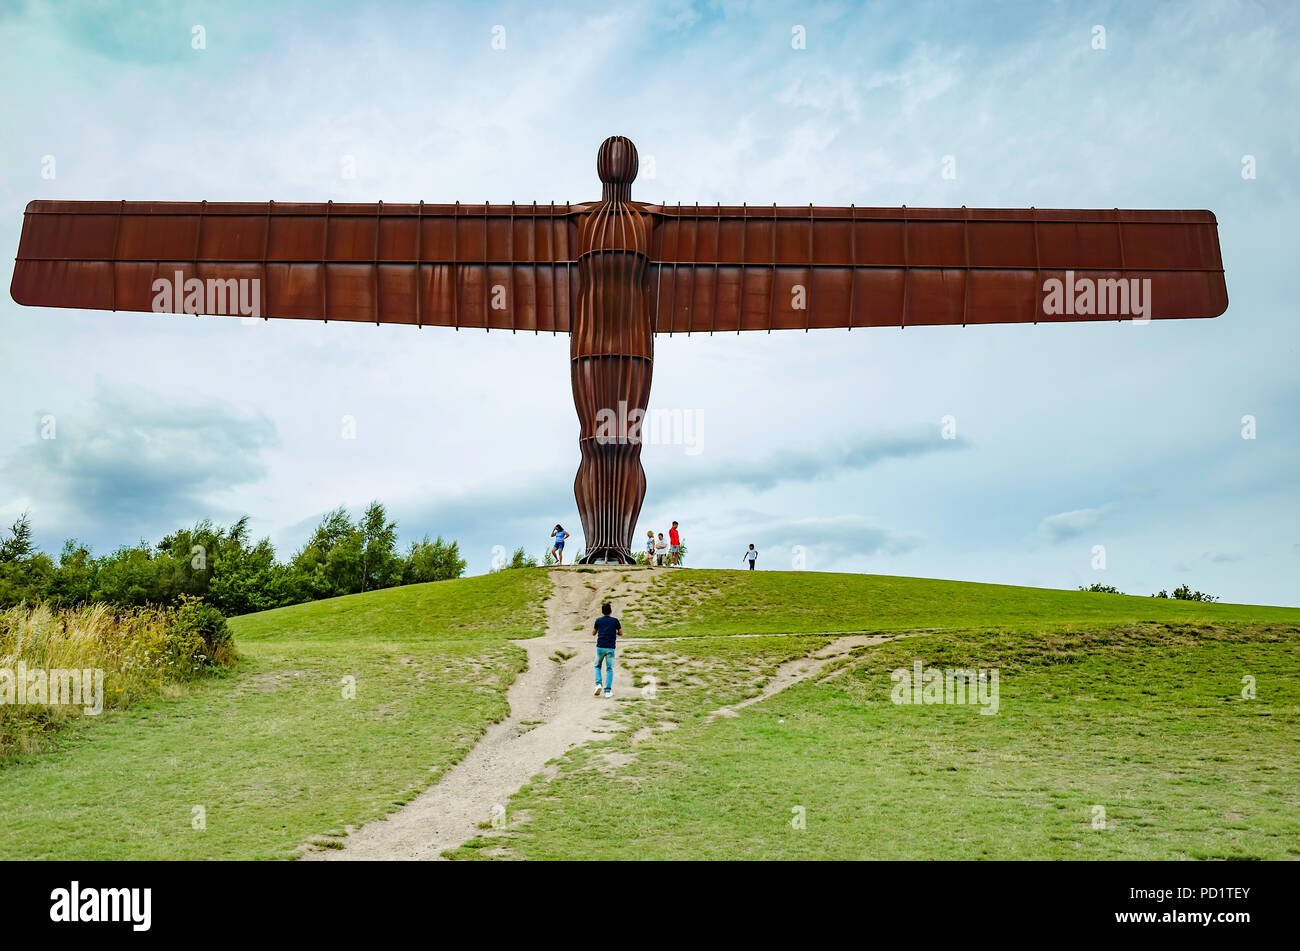 A group of people at the foot of the massive Angel of the North sculpture by Anthony Gormley  at Gateshead giving scale Stock Photo